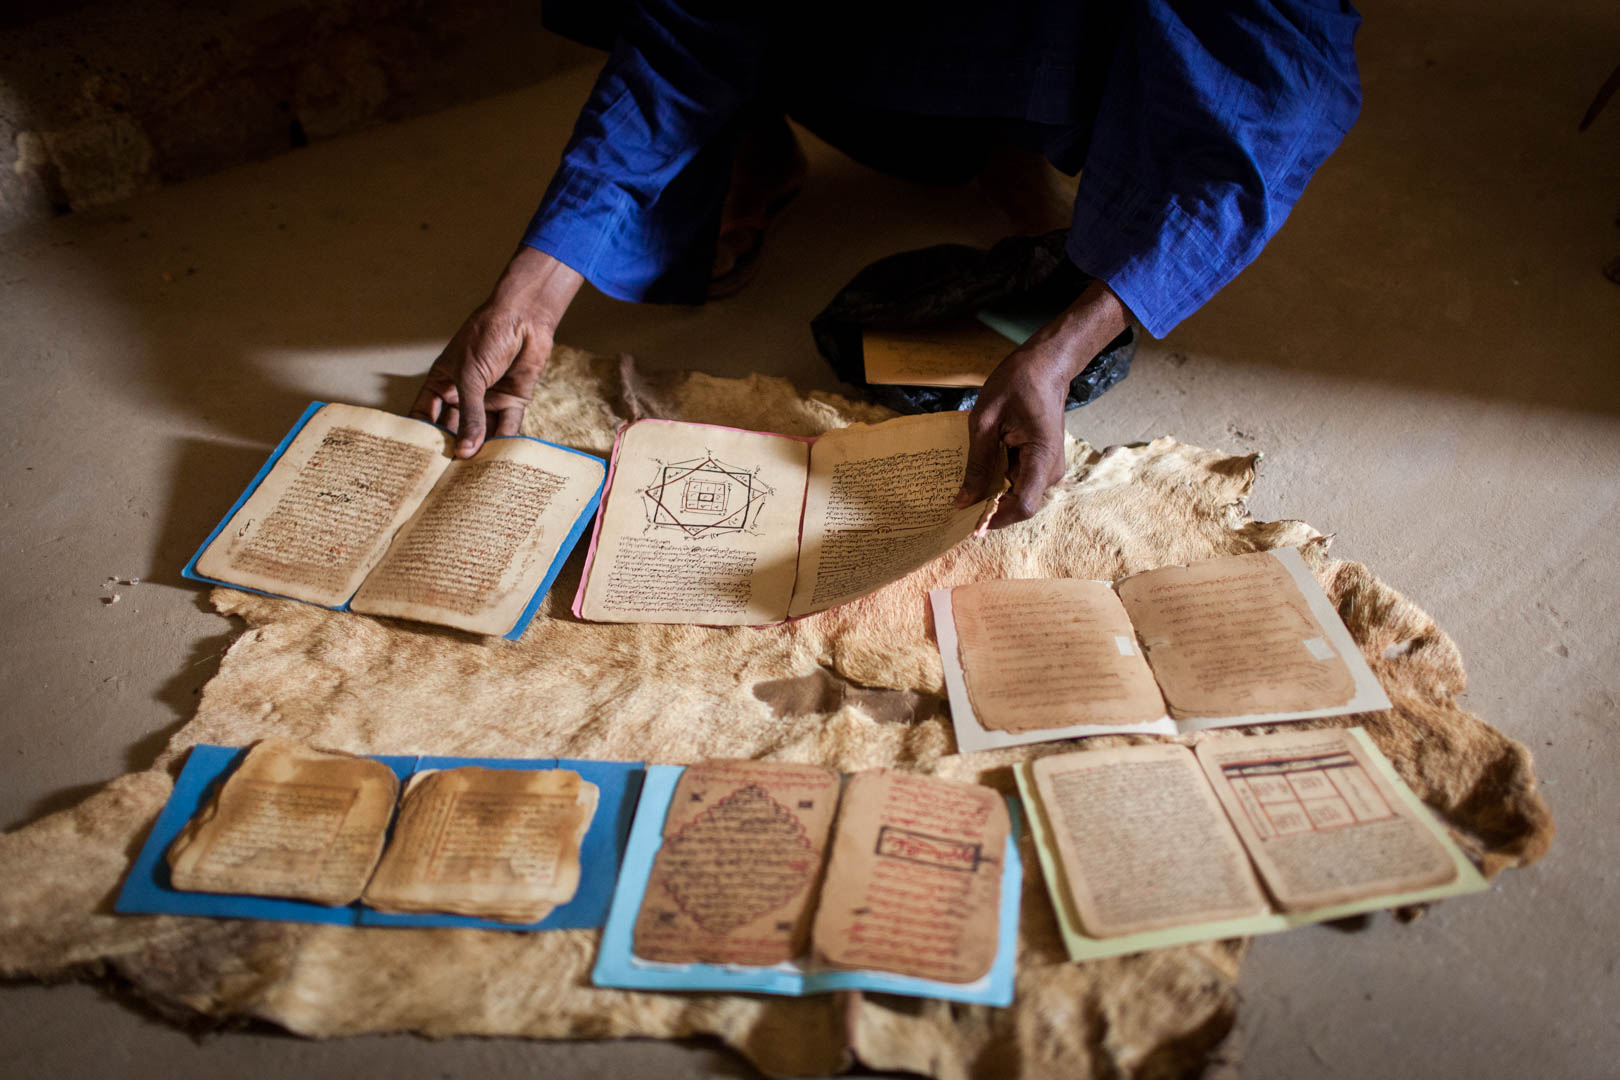 Timbuktu has dozens of small private libraries, some only being roughly a dozen pages of ancient manuscripts inherited from the great-grandfather.